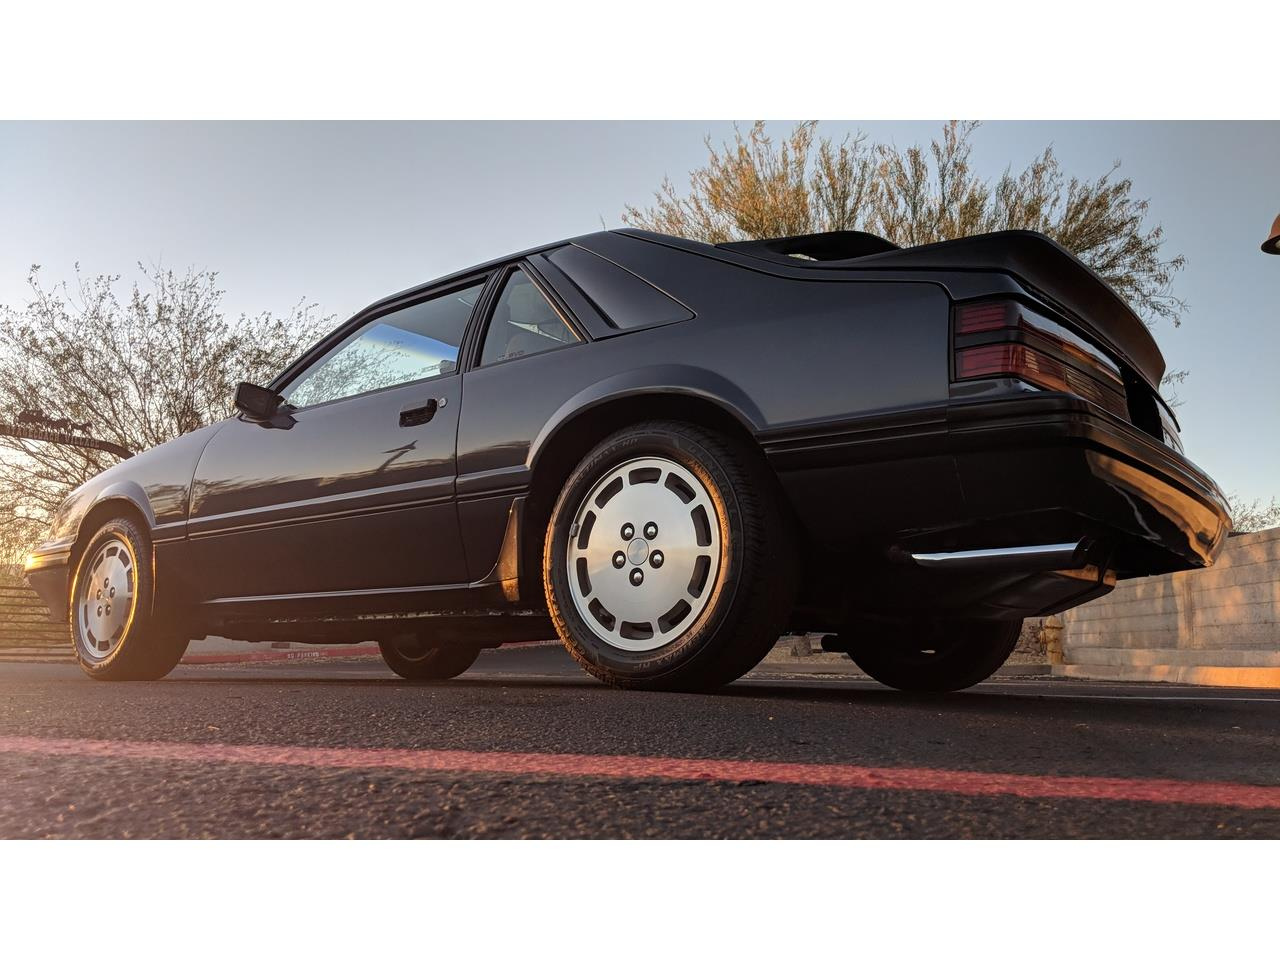 Large Picture of 1984 Mustang SVO located in Arizona Offered by a Private Seller - MXZ6